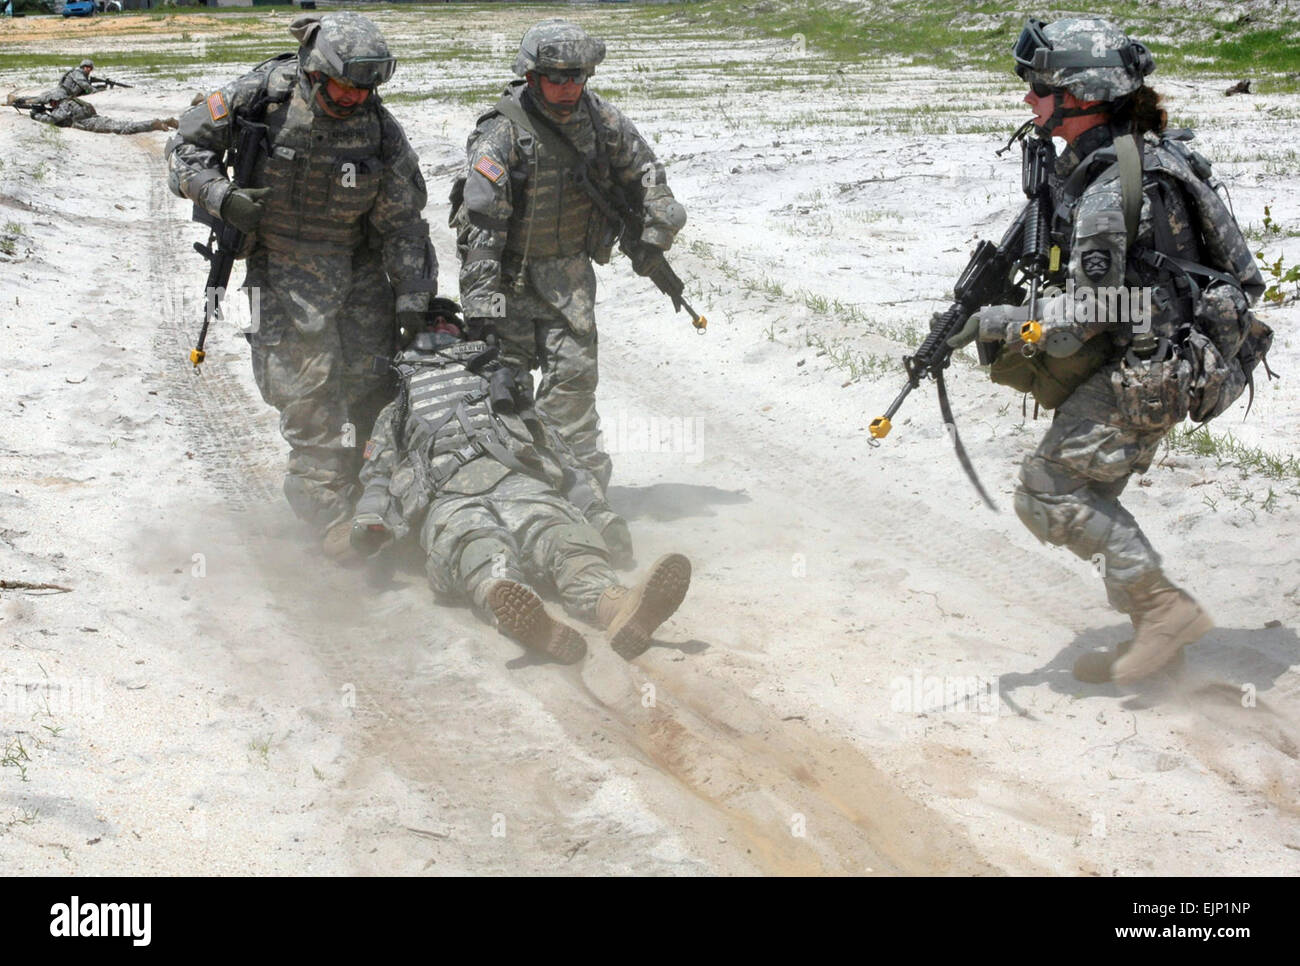 U.S. Army Soldiers drag Staff Sgt. Kevin Hartman out of harms way during an improvised explosive device training - Stock Image